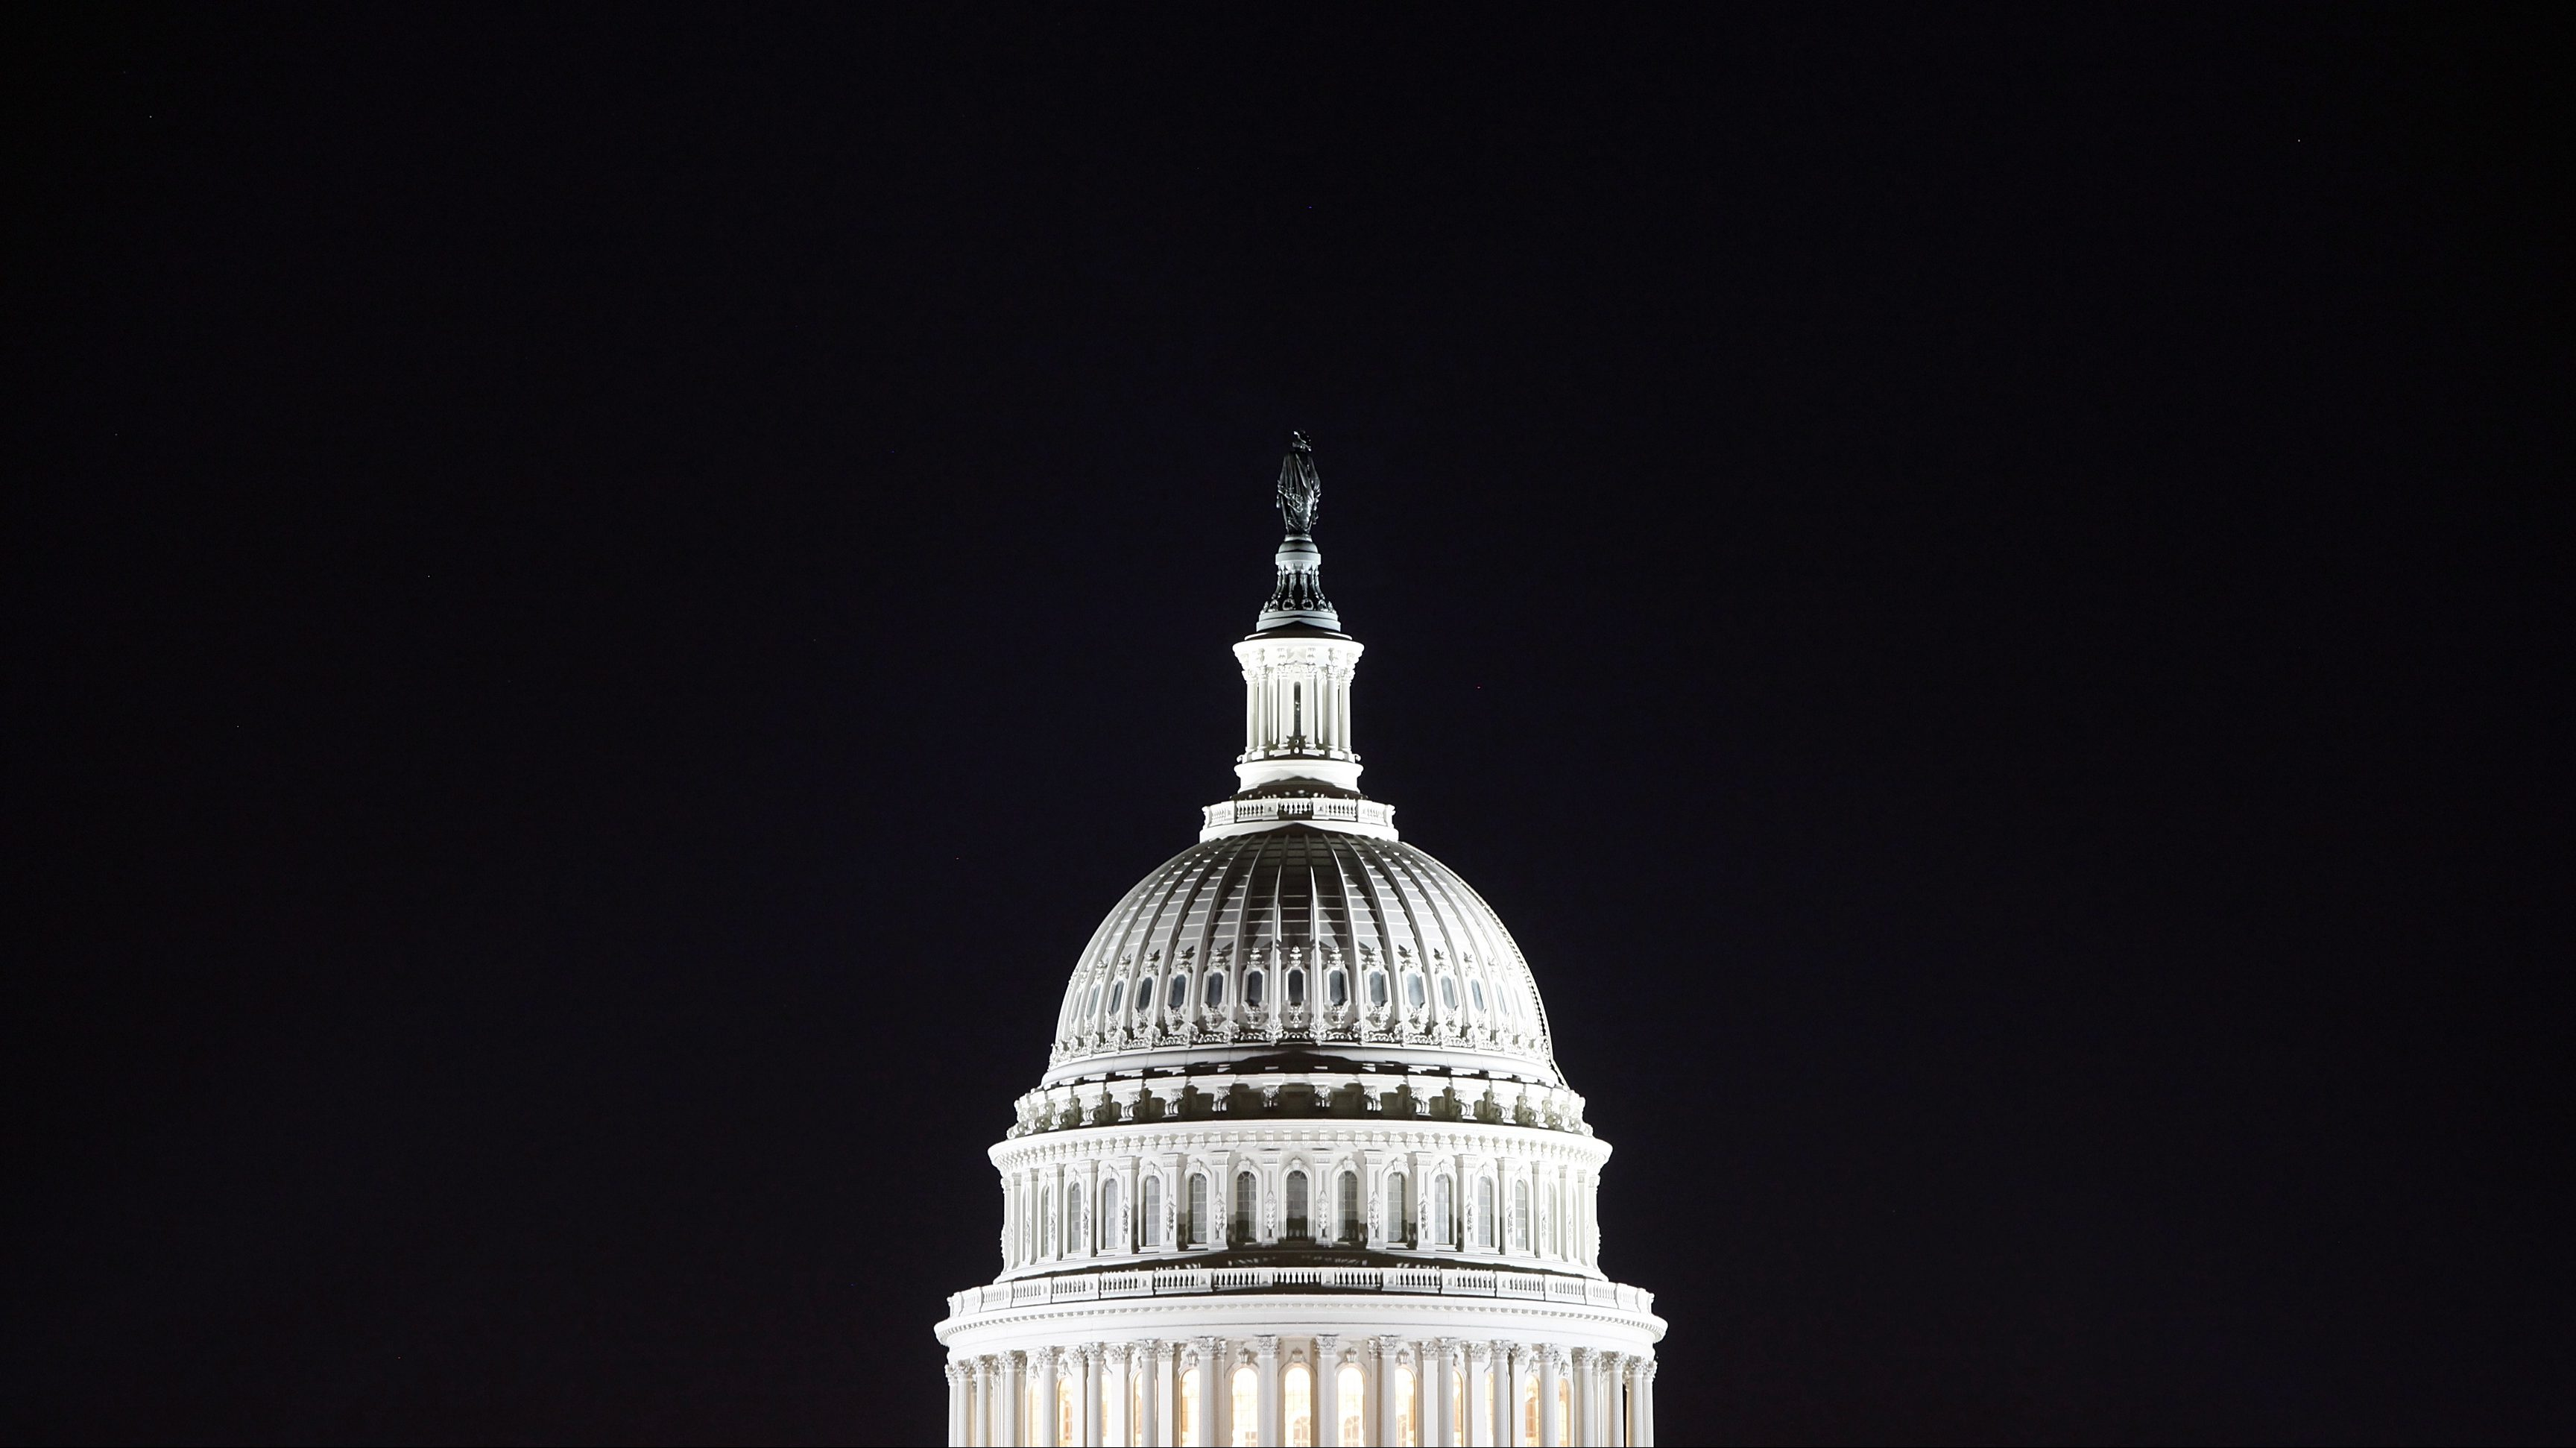 The U.S. Capitol dome is pictured in the pre-dawn darkness in this general view taken in Washington, October 18, 2013.  U.S. lawmakers launched an effort to resolve budget differences in a less confrontational fashion on Thursday as Washington picked up the pieces from a political crisis and 16-day government shutdown that has slowed the economy and undermined the country's international standing.   REUTERS/Jonathan Ernst    (UNITED STATES - Tags: POLITICS BUSINESS) - RTX14FVP